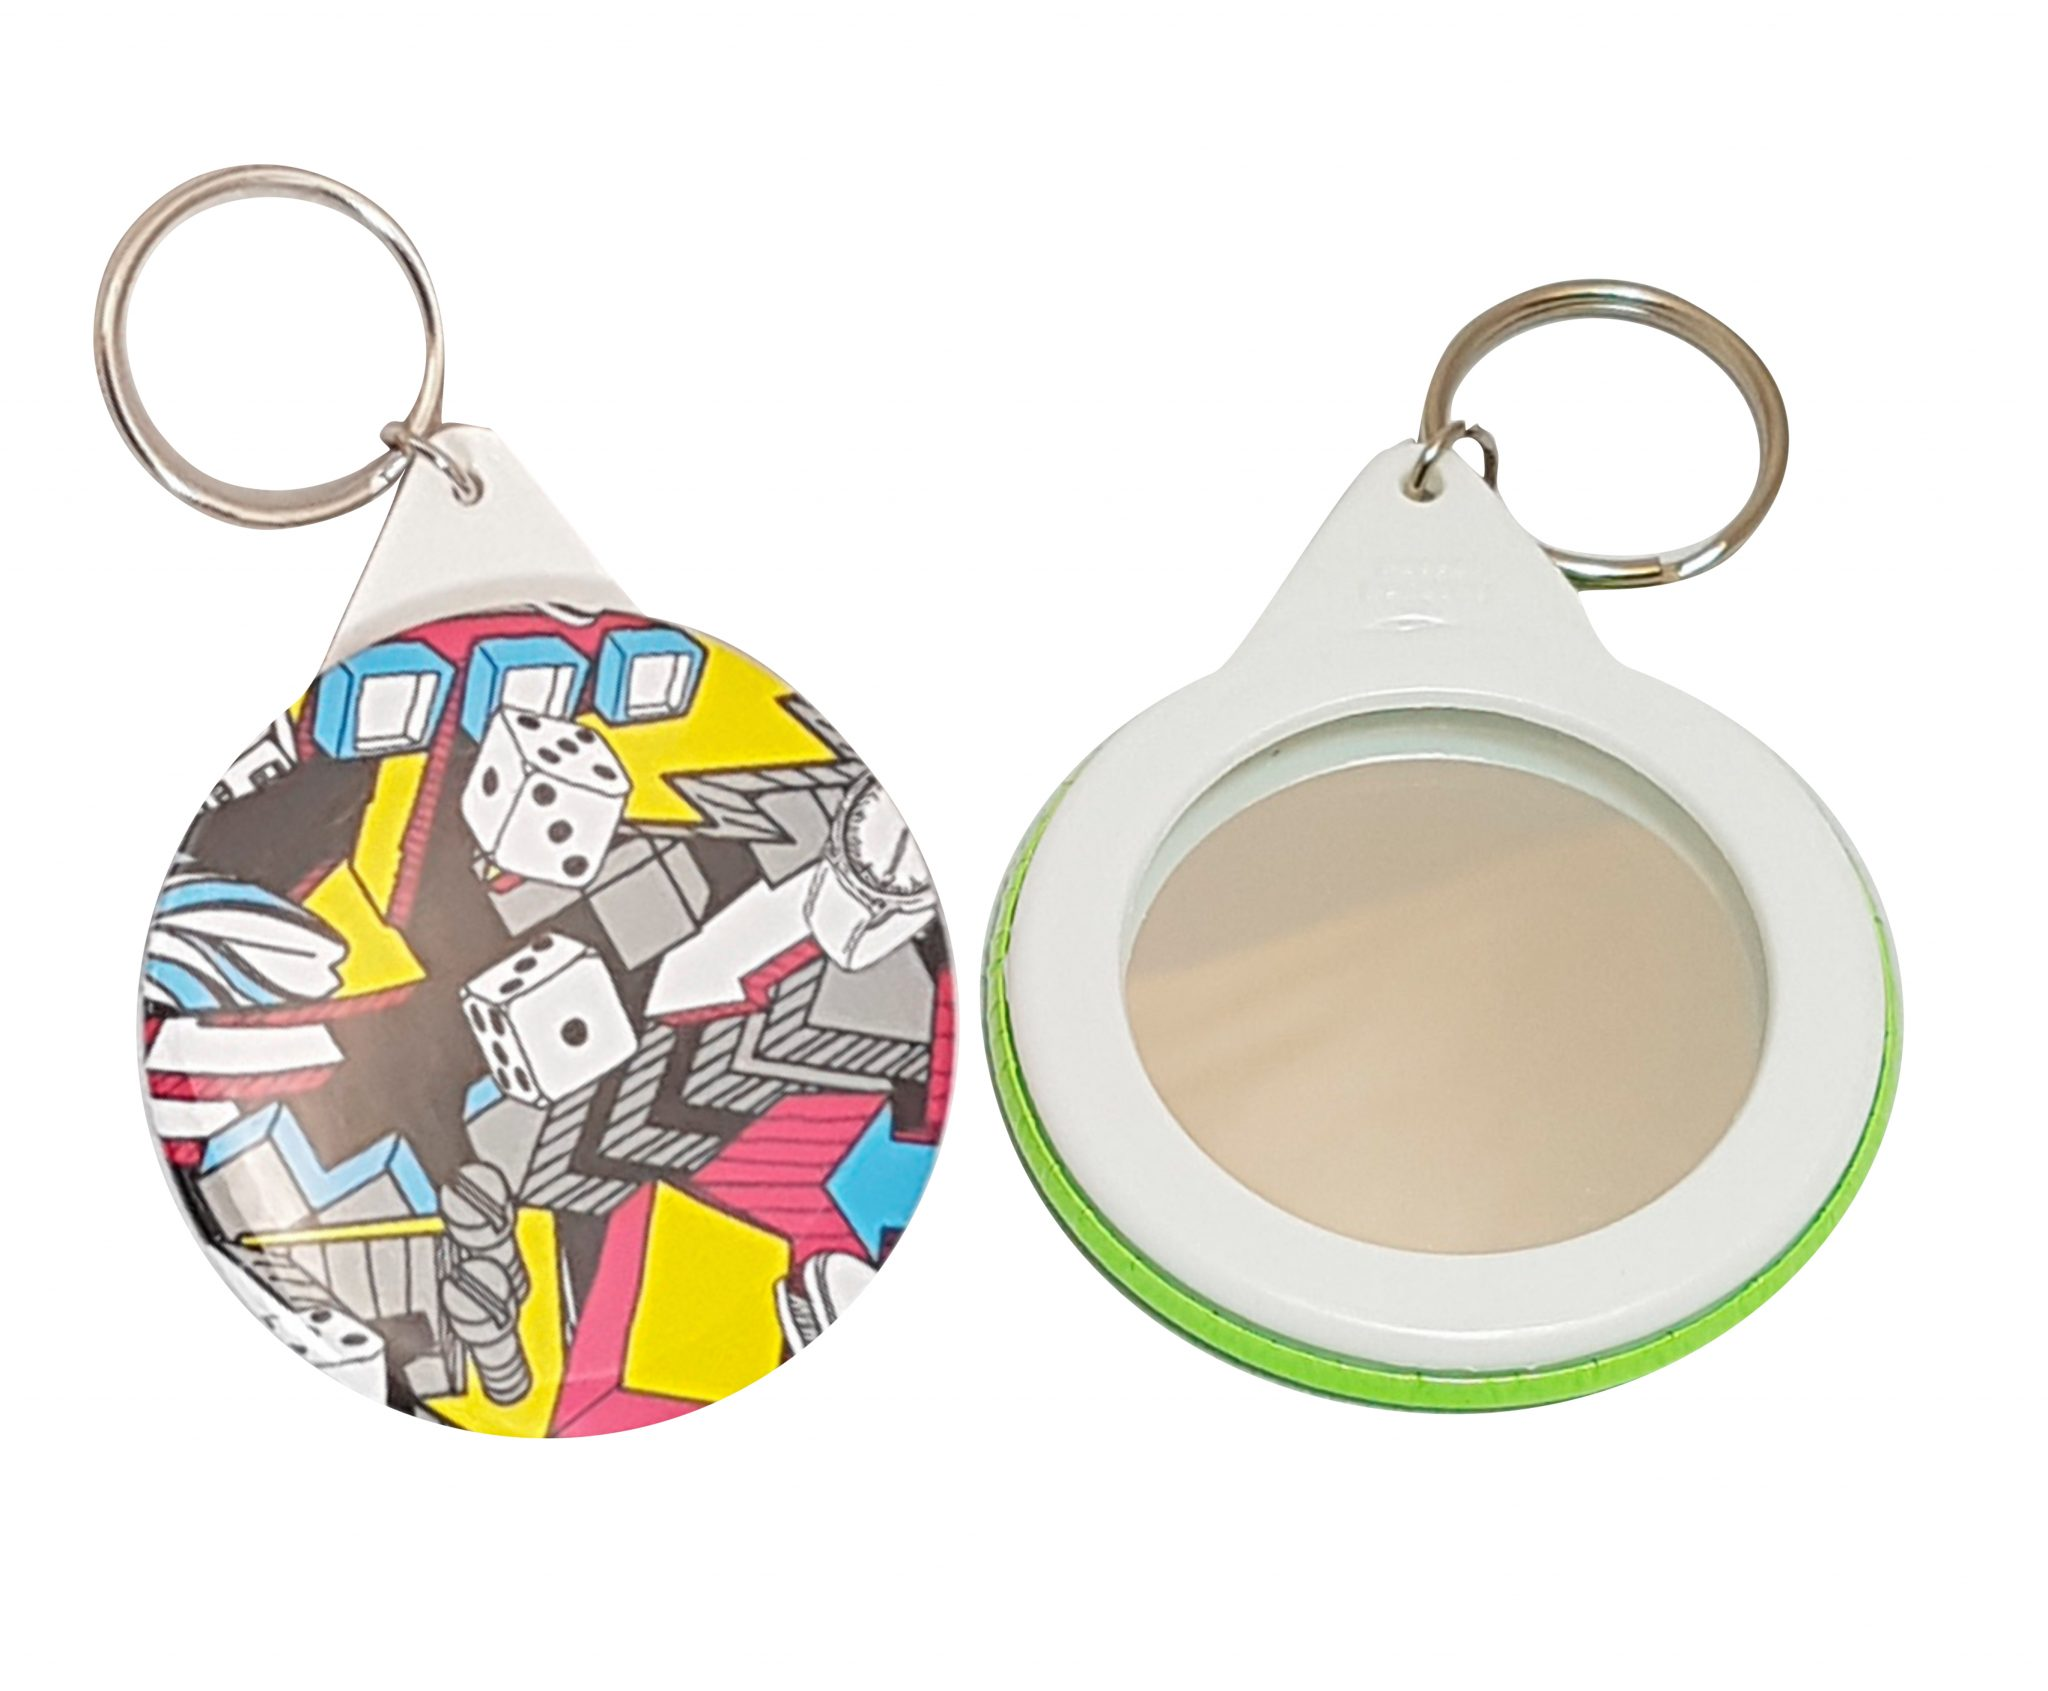 key ring makers torquay, key ring printers in torquay, cheap key ring printers in torquay,